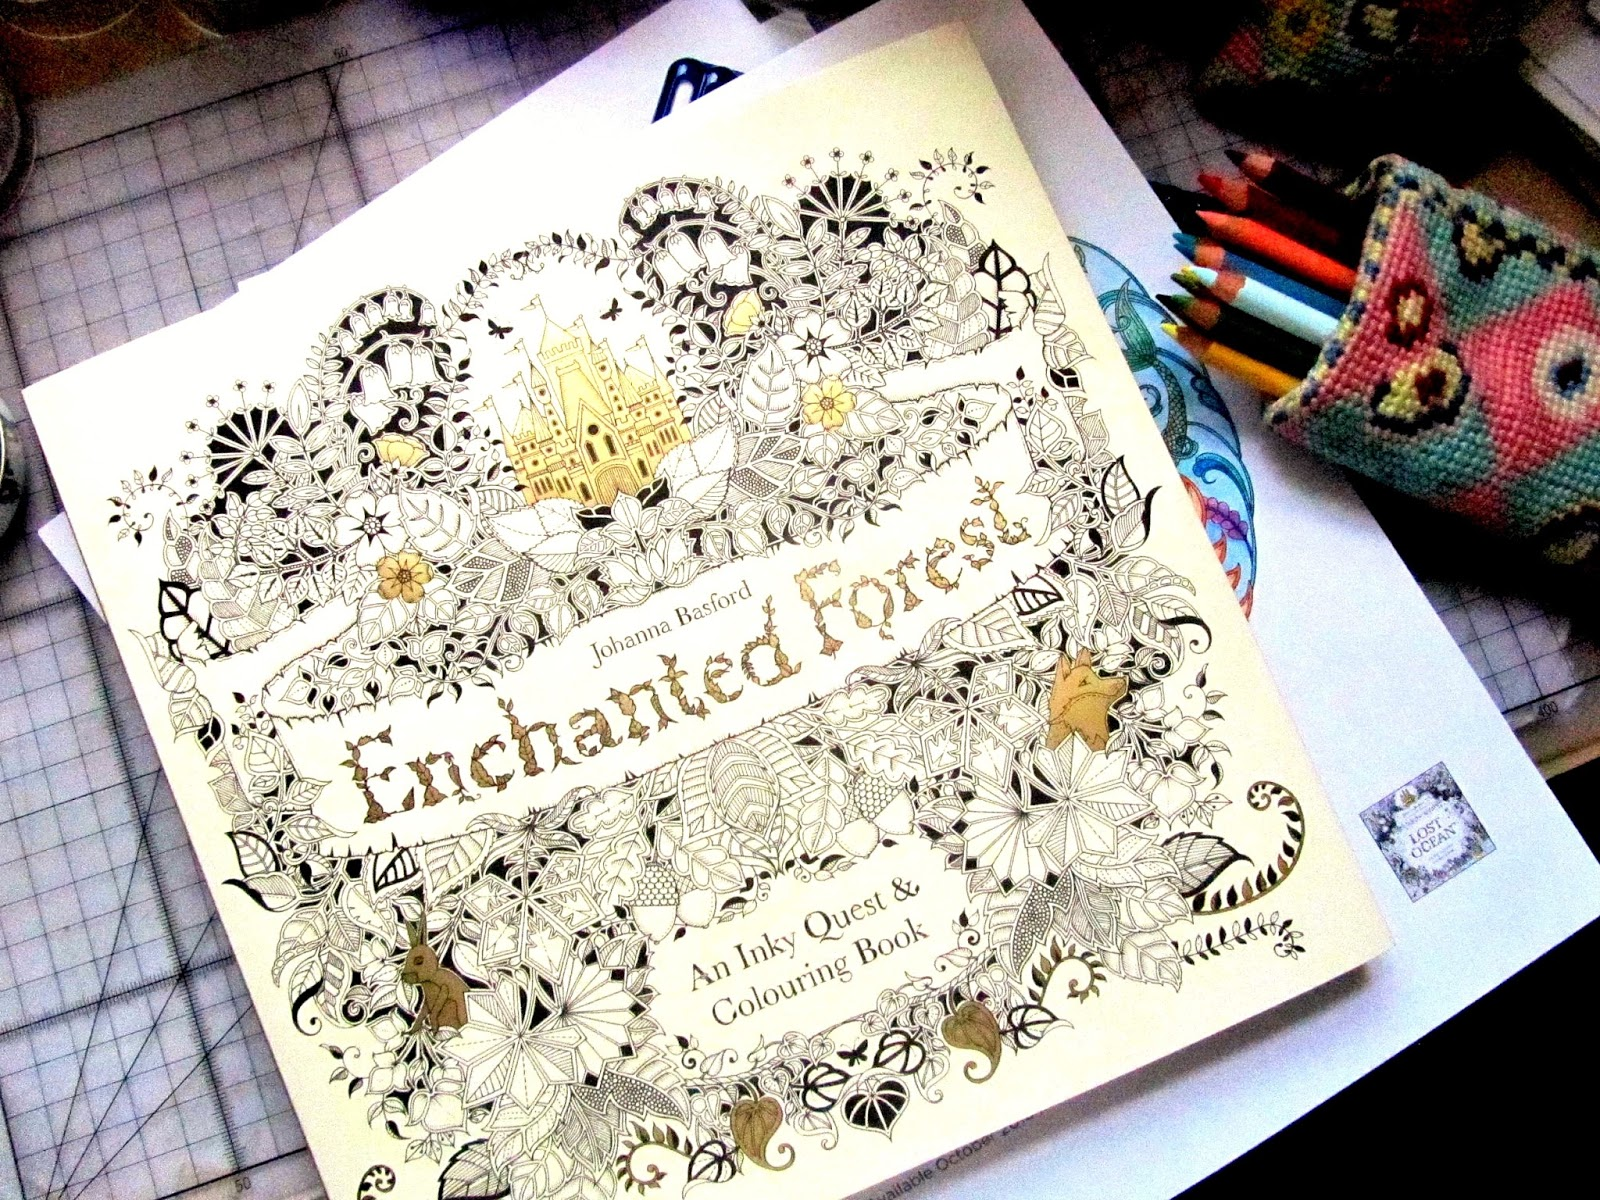 But Now In 2015 The Queen Of Colouring Is Undoubtedly Scottish Illustrator Johanna Basford Her First Book Secret Garden Has Sold Over A Million